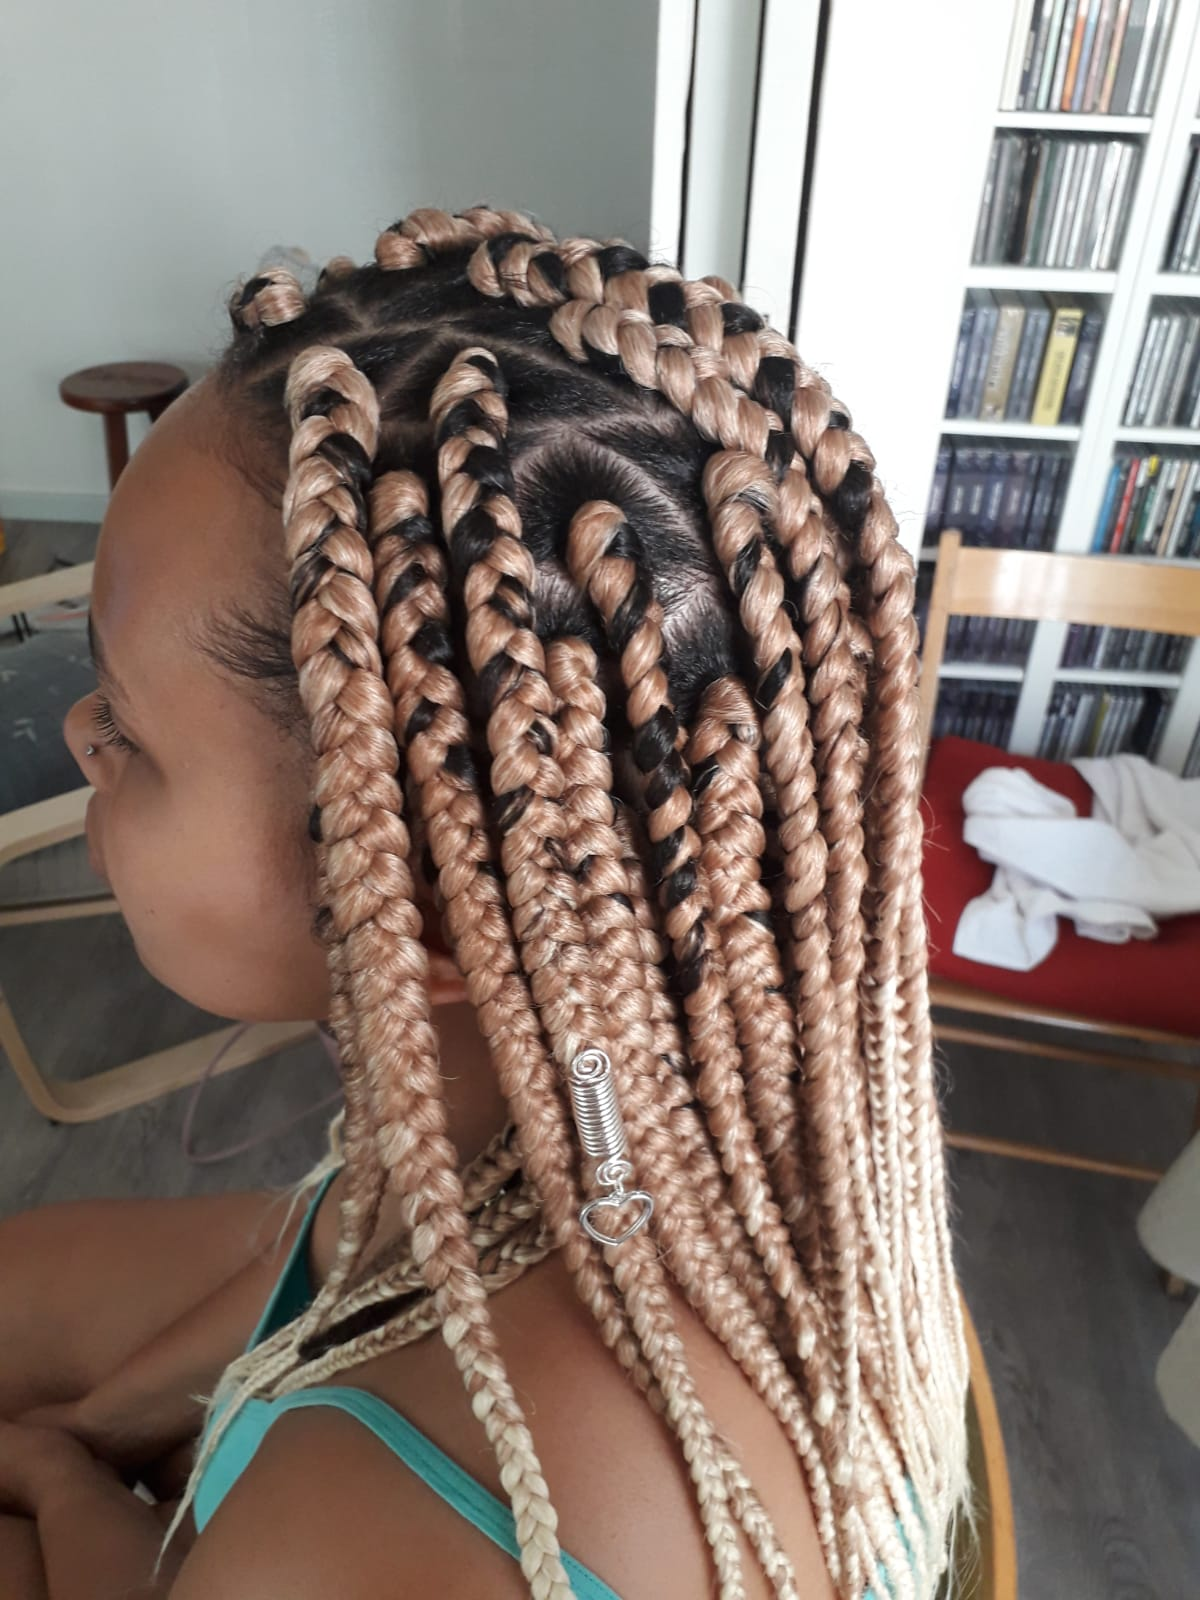 salon de coiffure afro tresse tresses box braids crochet braids vanilles tissages paris 75 77 78 91 92 93 94 95 UOGWUPIS